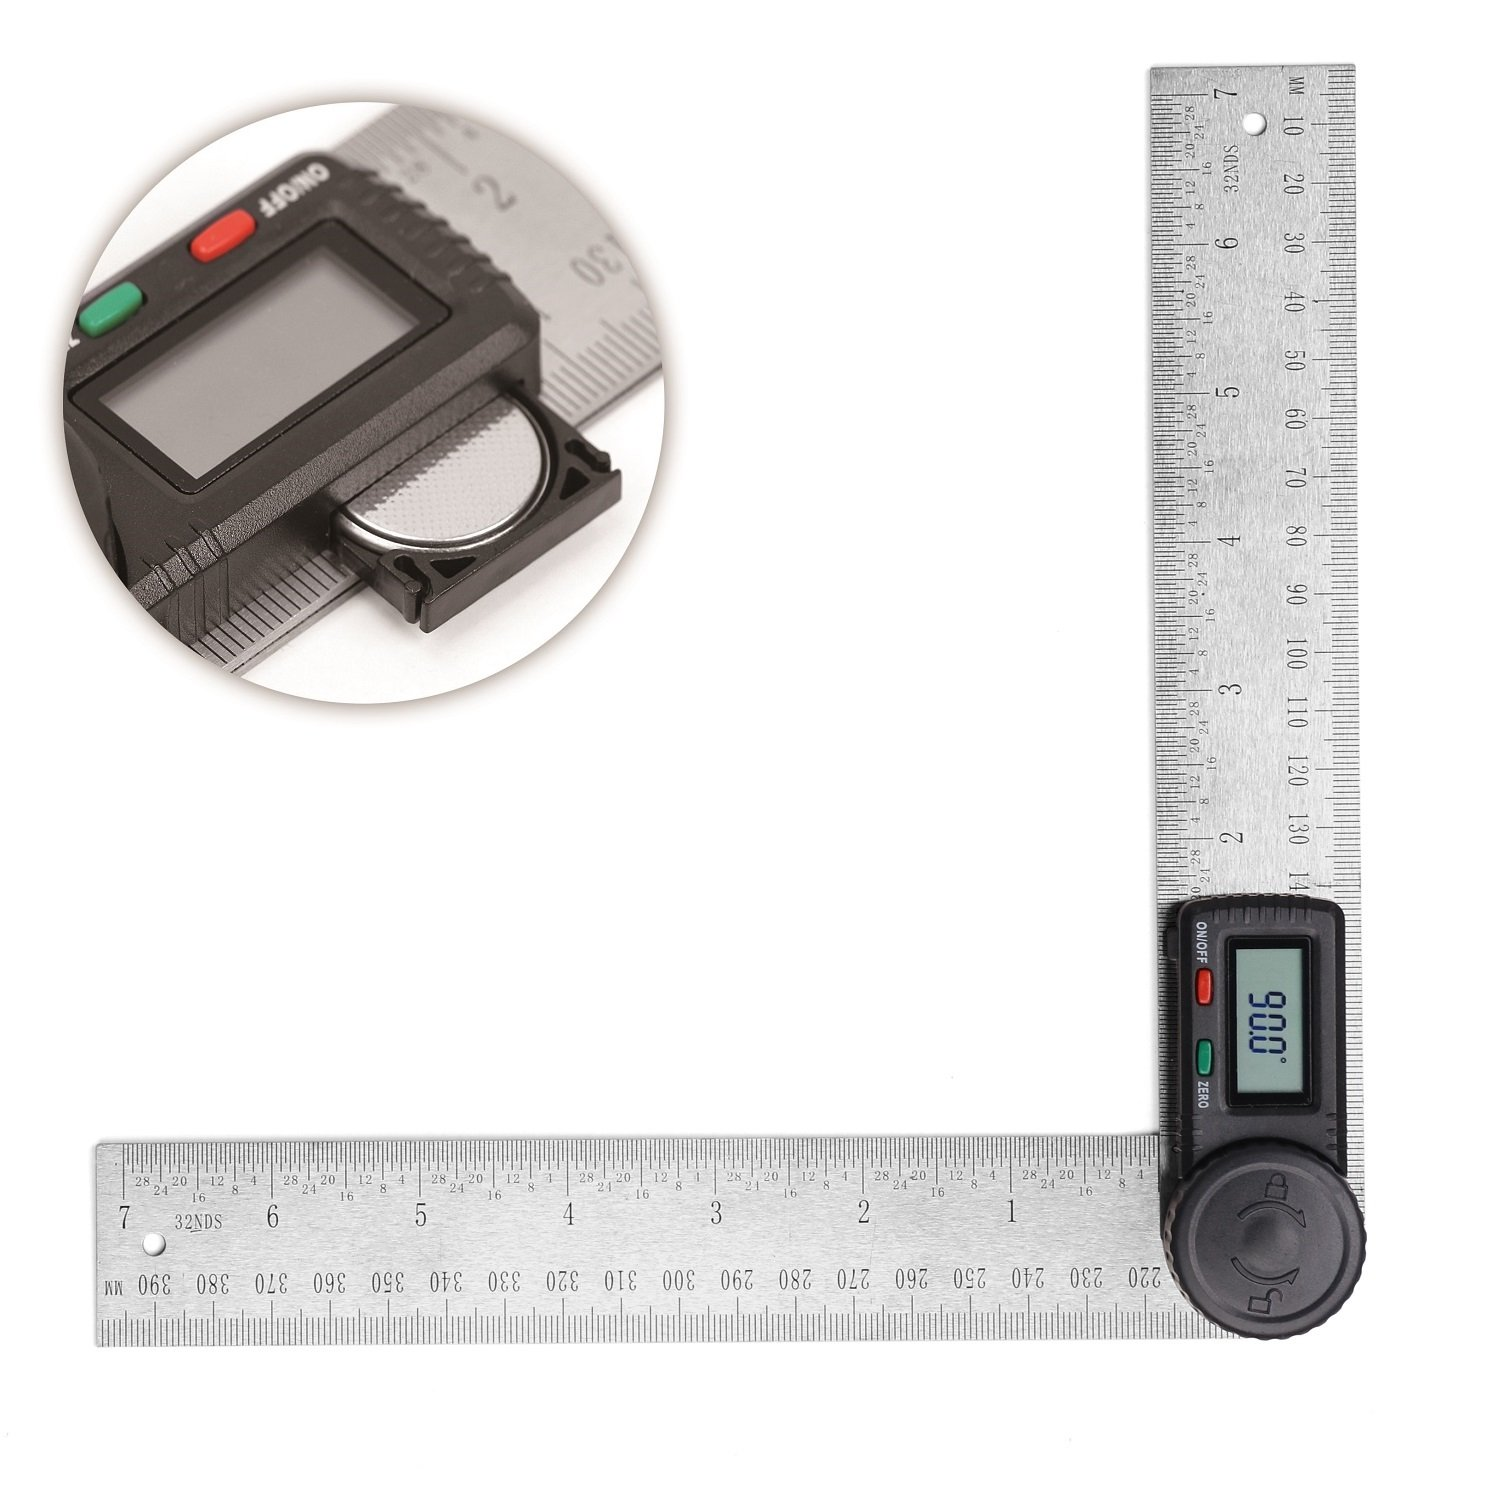 HORUSDY Digital Angle Finder Ruler 7 Inch Digital Protractor 200mm Stainless Steel Angle Gauge Best Unique Tool Gift for Men